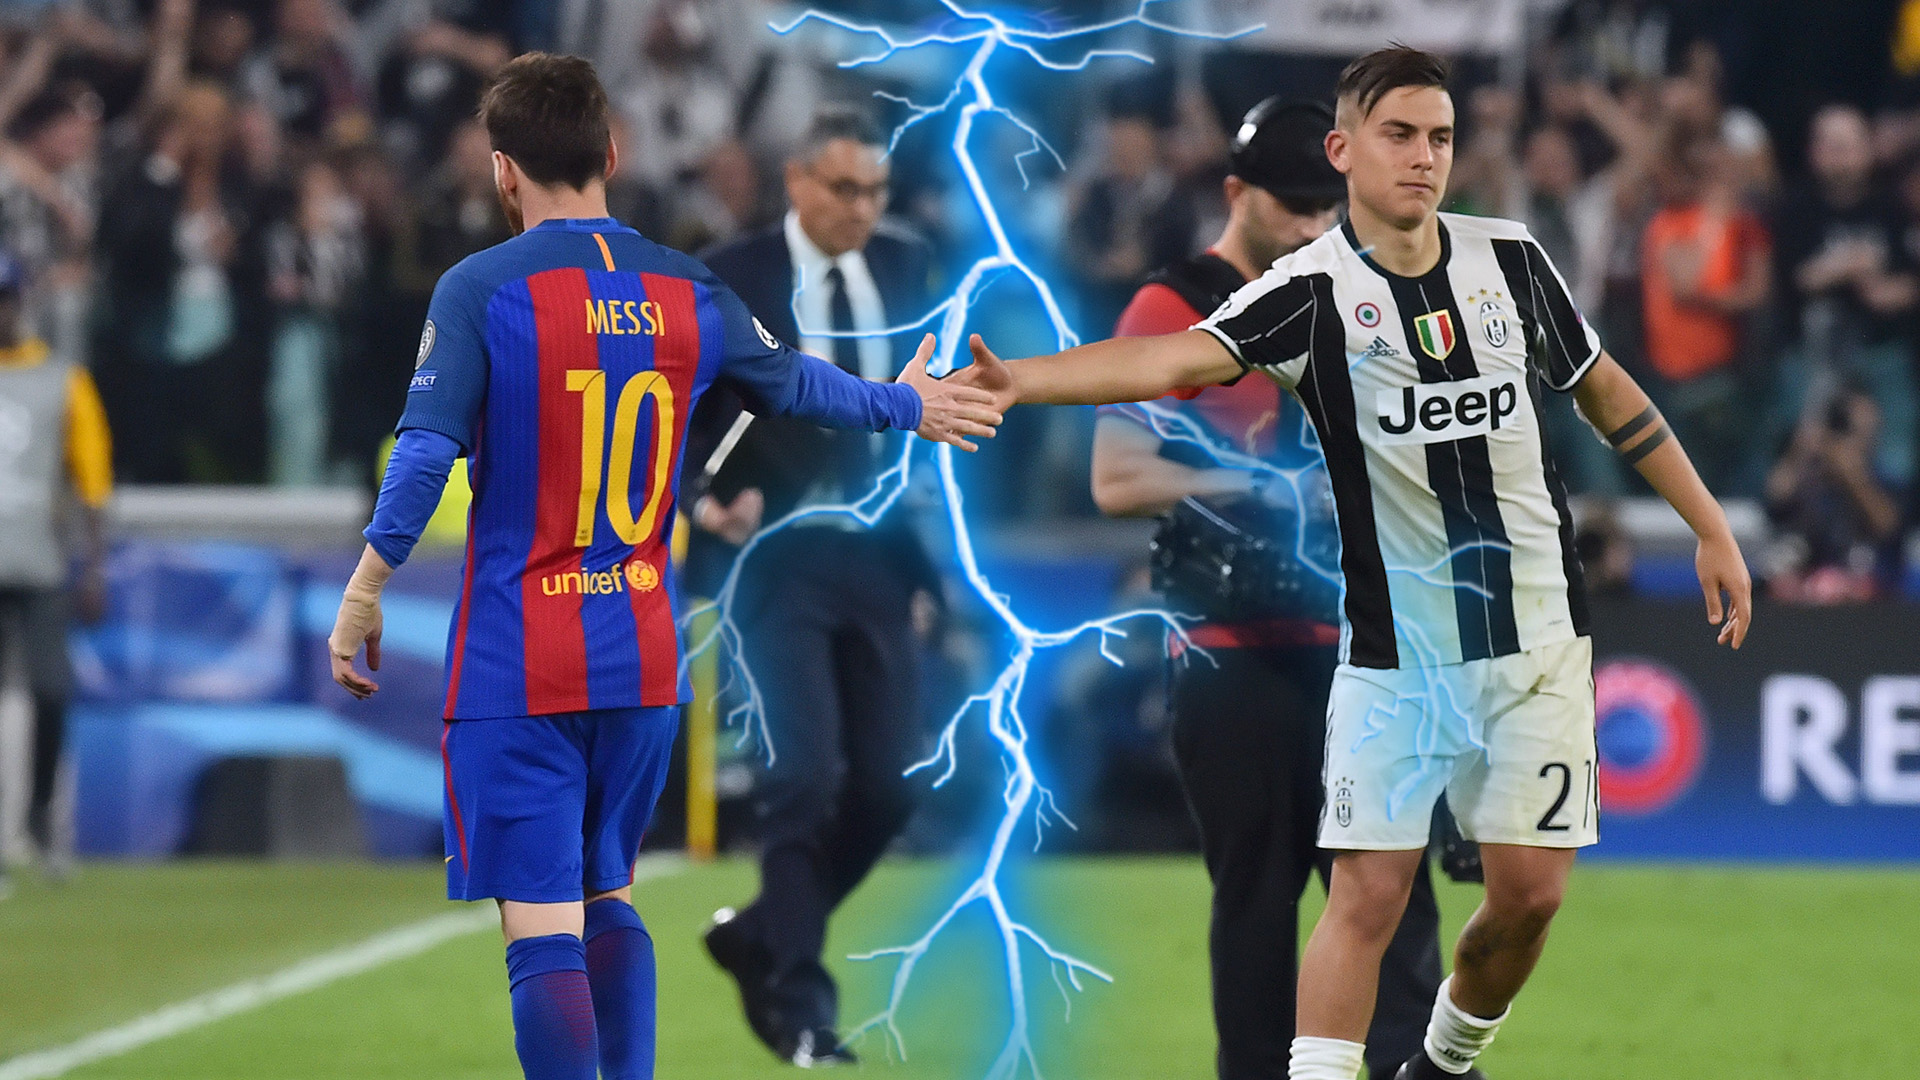 Paulo Dybala should consider Manchester United transfer move, says Mino Raiola